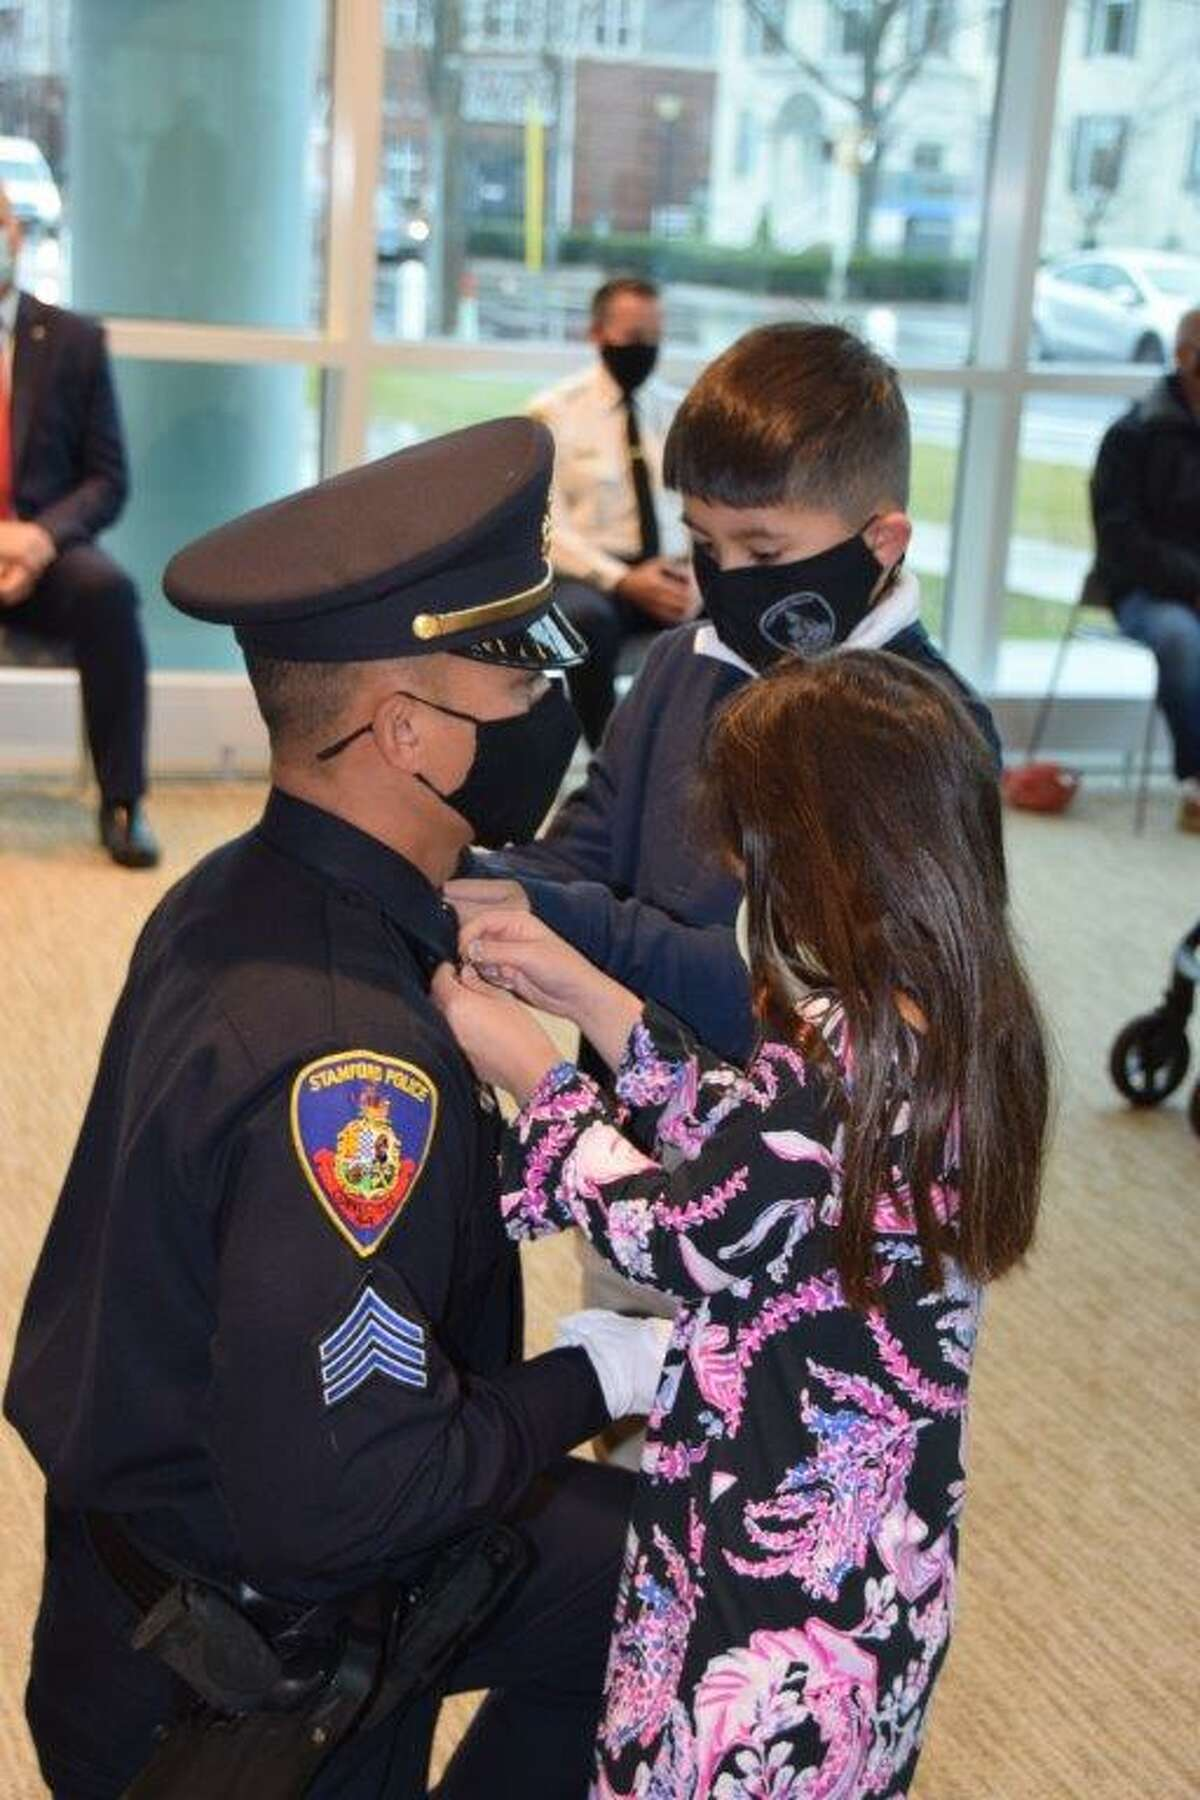 """Newly minted Sgt. Michael Nguyen has his gold chevrons pinned to his collar by his son Michael Jr., 9, and daughter Kyla, 7, at a promotion ceremony held at Stamford police headquarters on Dec. 14, 2020. Felman-Merced, 32, a native of Beacon, N.Y., has been in the department for eight years. """"It is a blessing. It's almost a little surreal,"""" Felman-Merced said when asked how he felt about getting his stripes. """"It is ... everything it represents and being able to do it. And the amount of time on and being a part of the units I have been a part of, it really is a blessing."""""""